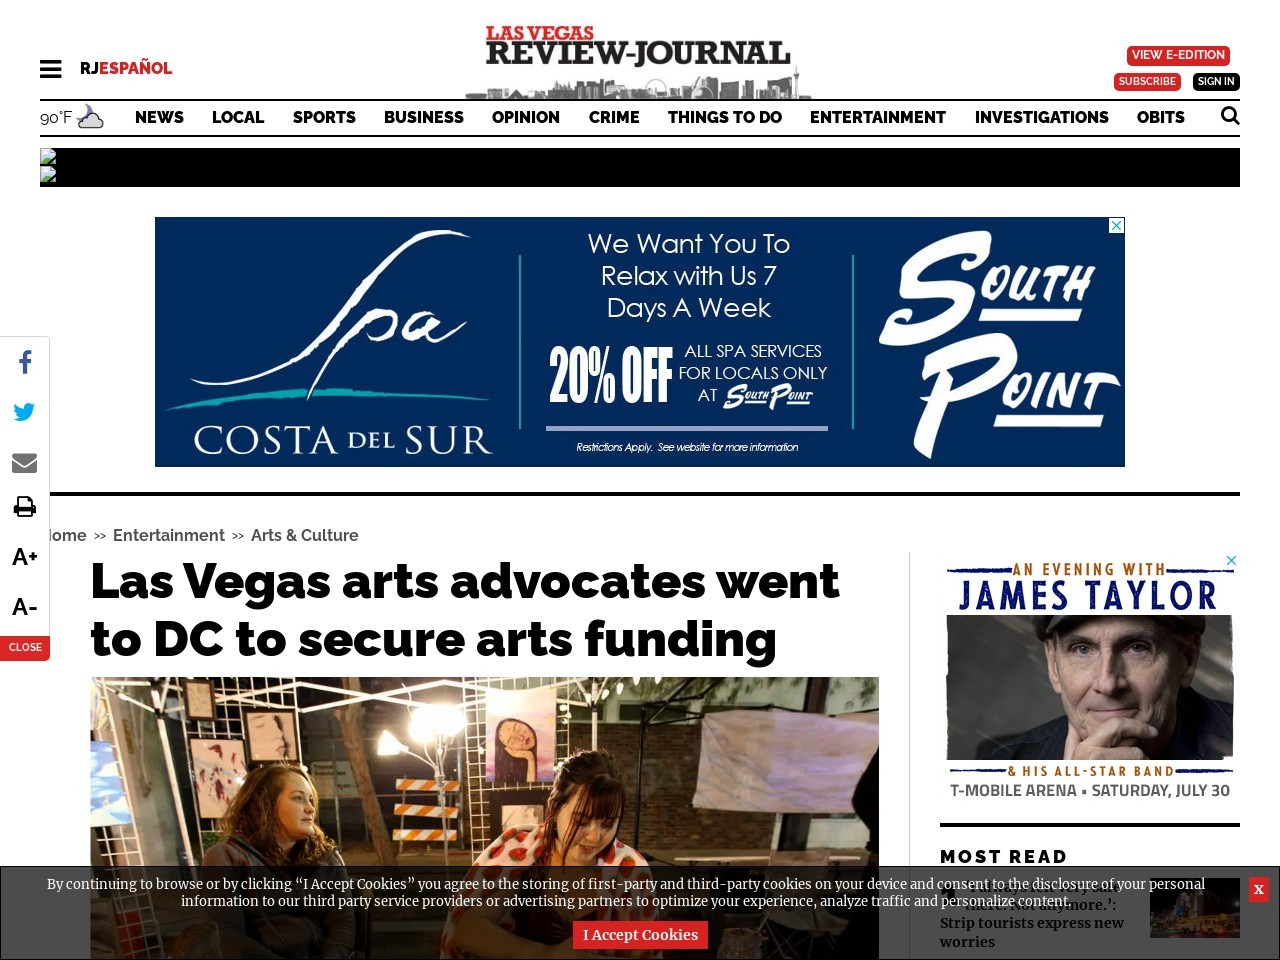 Las Vegas arts advocates went to DC to secure arts funding